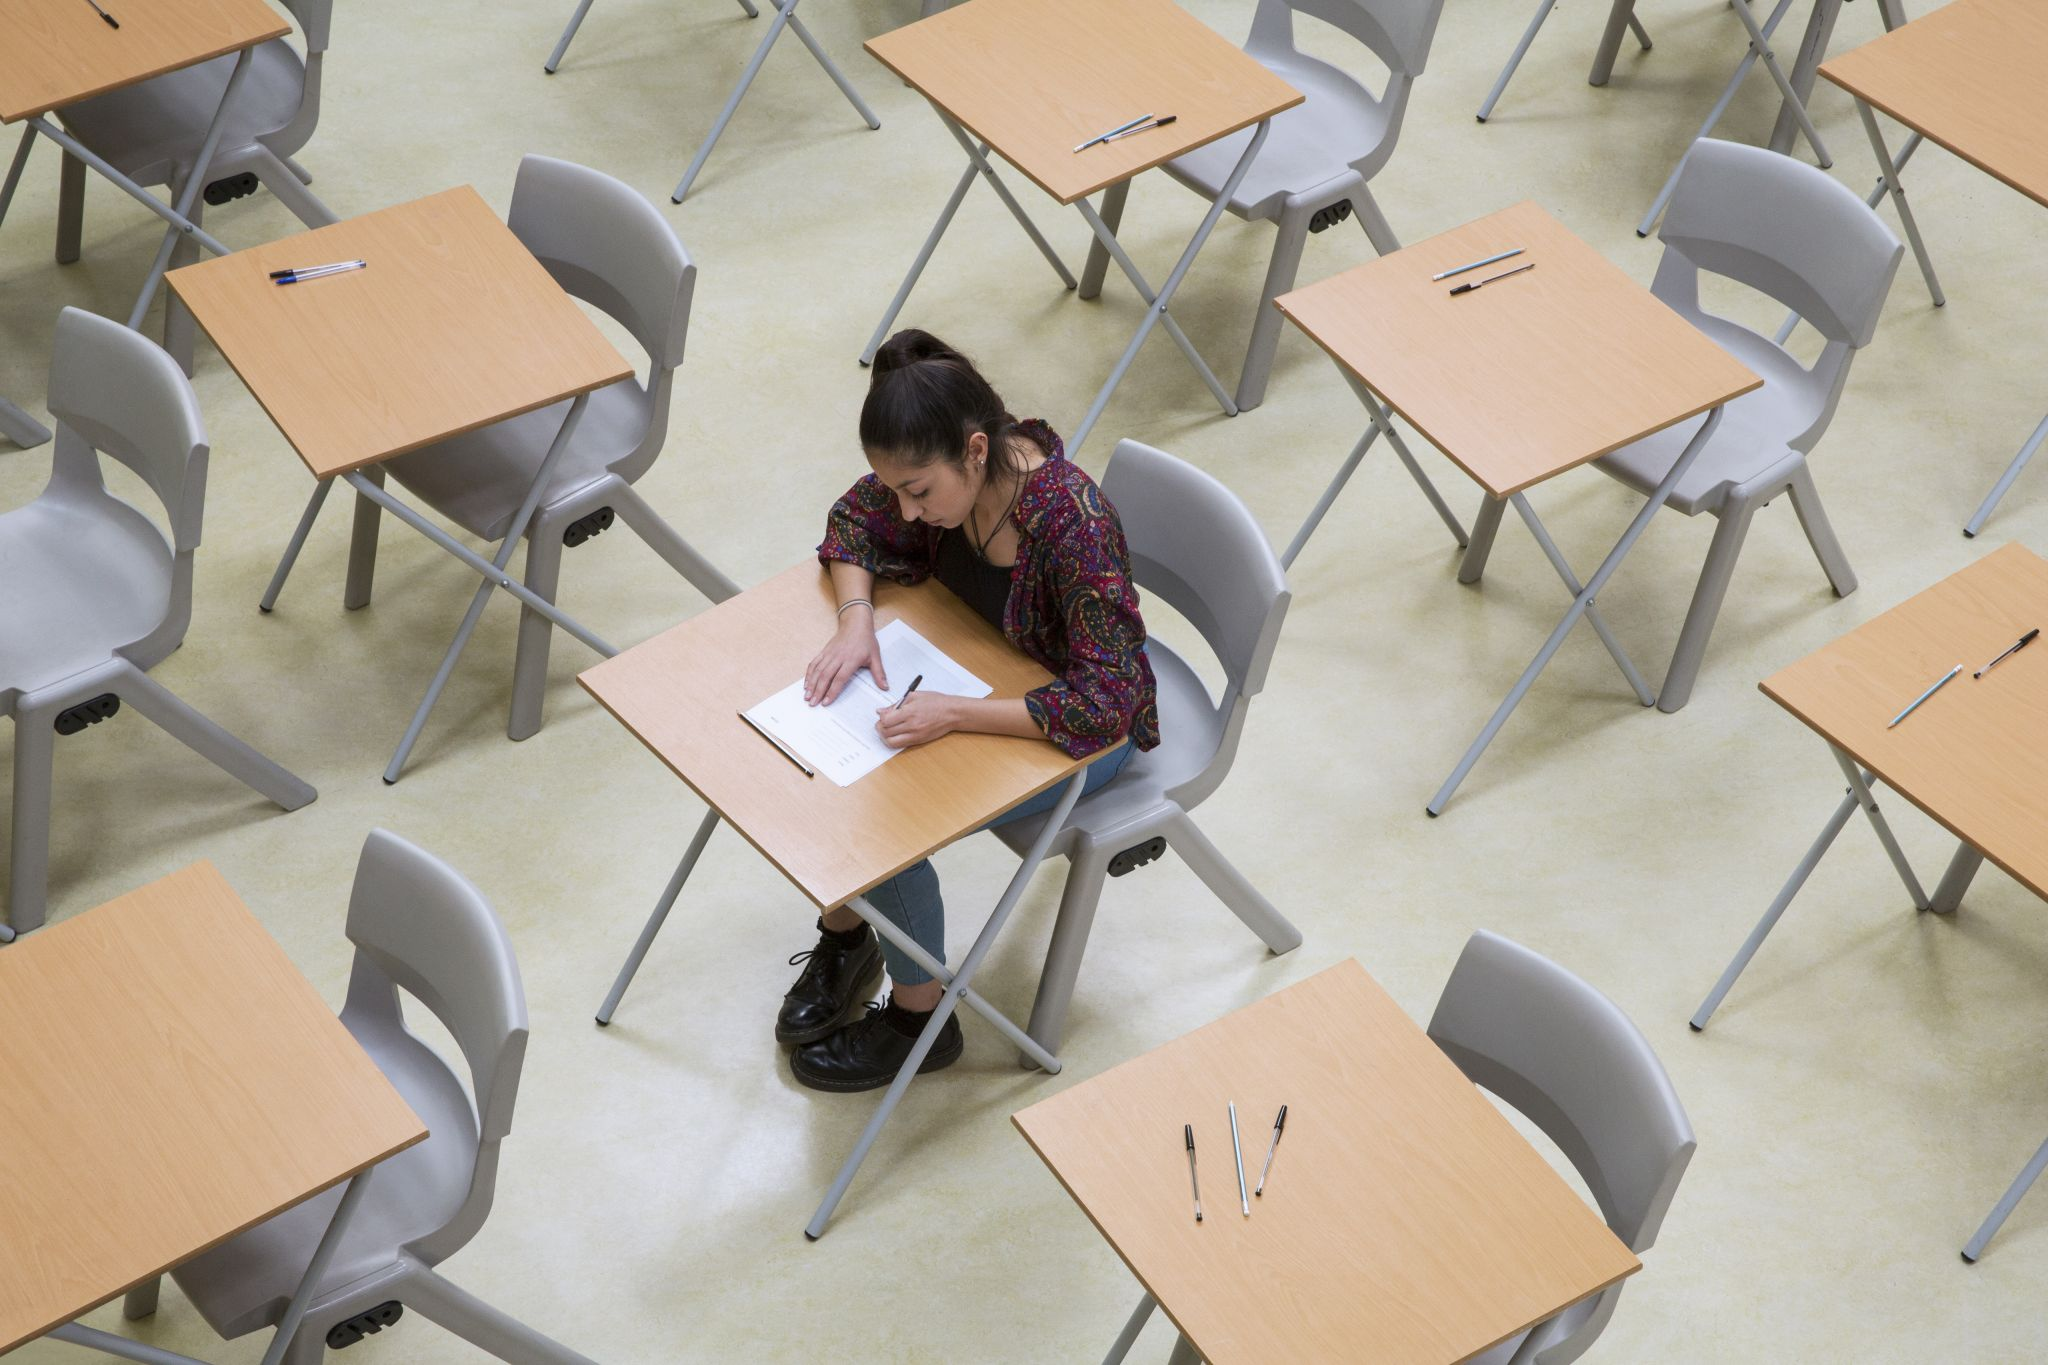 21 Houston ISD schools receive failing grades in new report from the Texas Education Agency